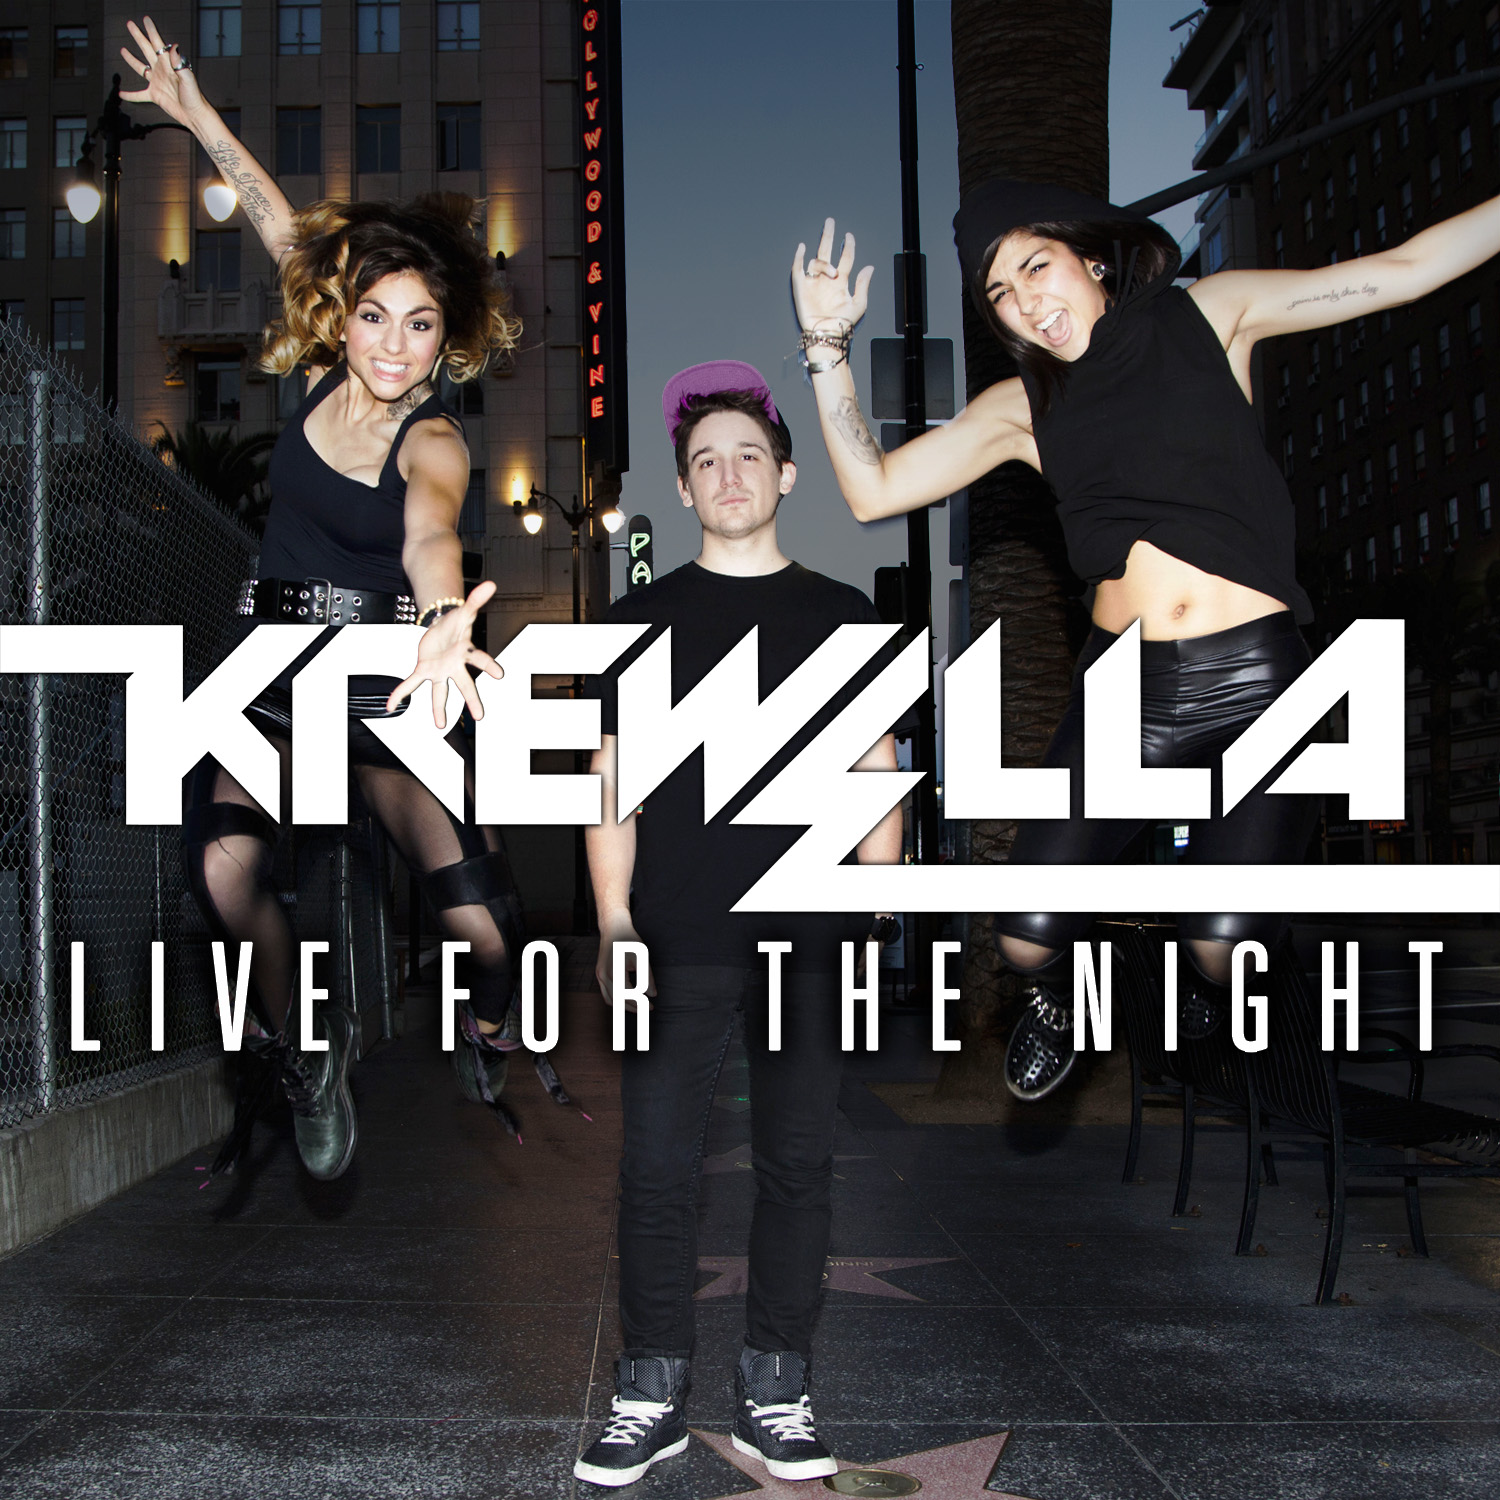 Krewella - Live For The Night Original mix cover